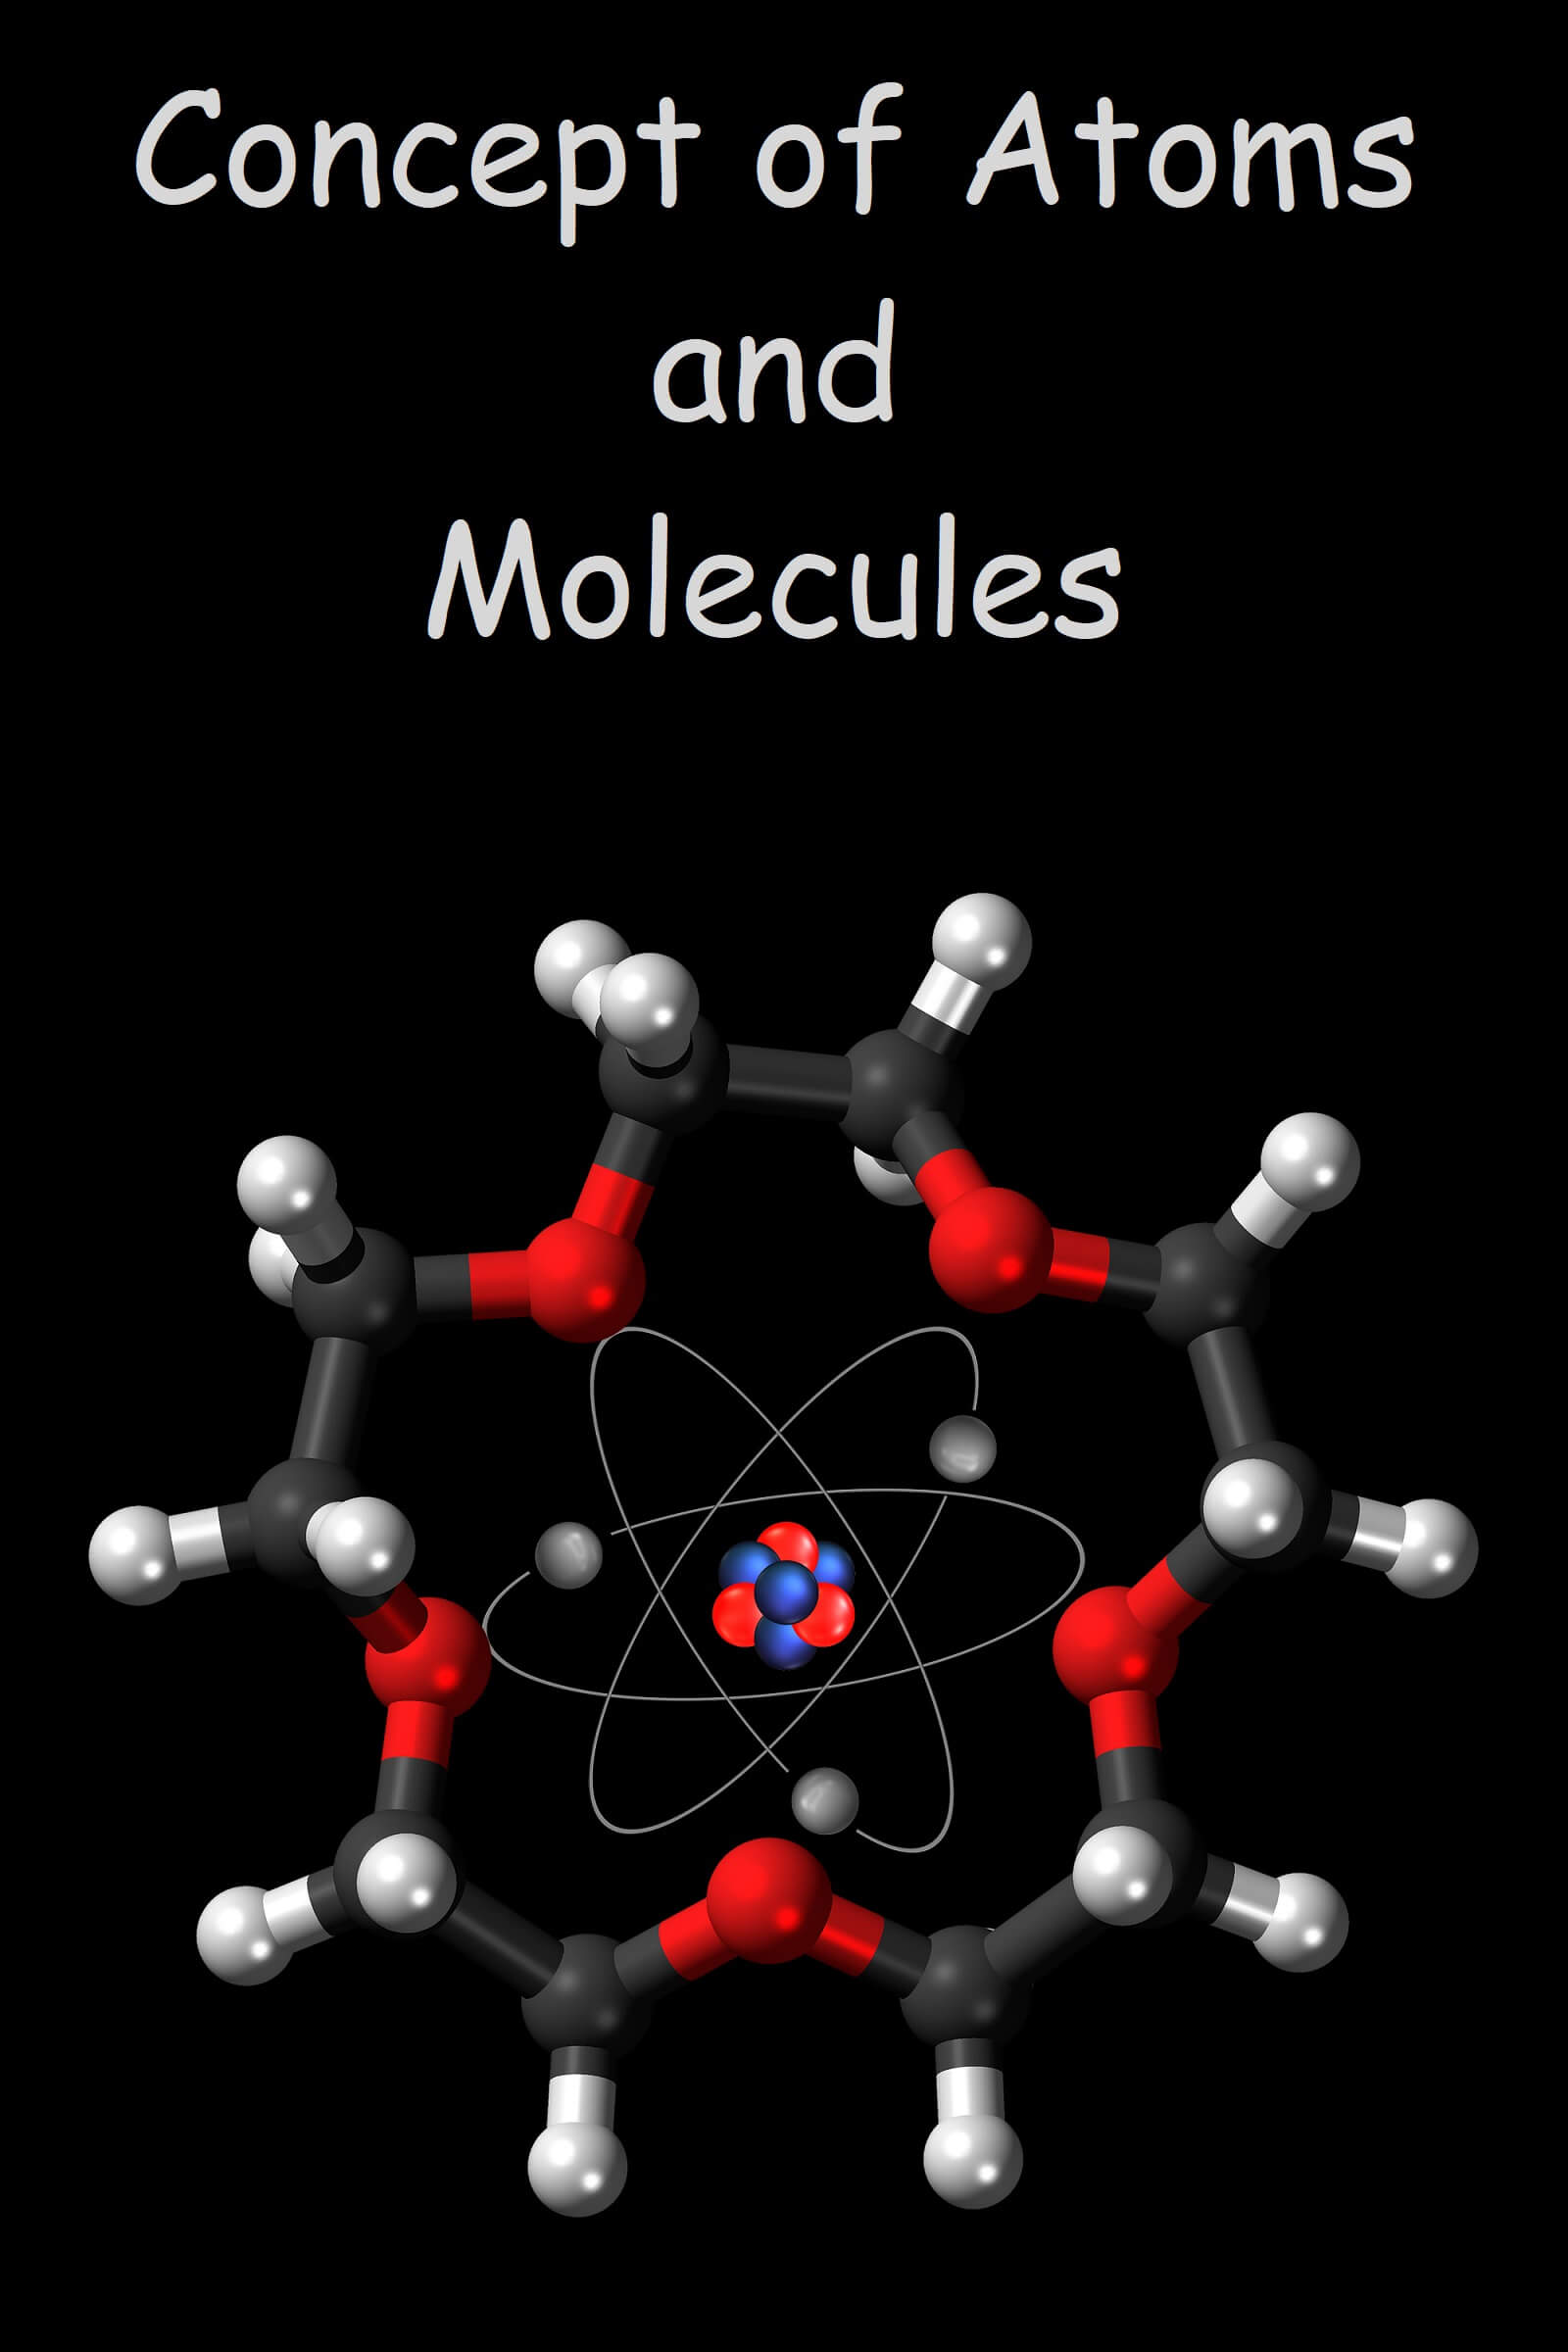 concept of atoms and molecules